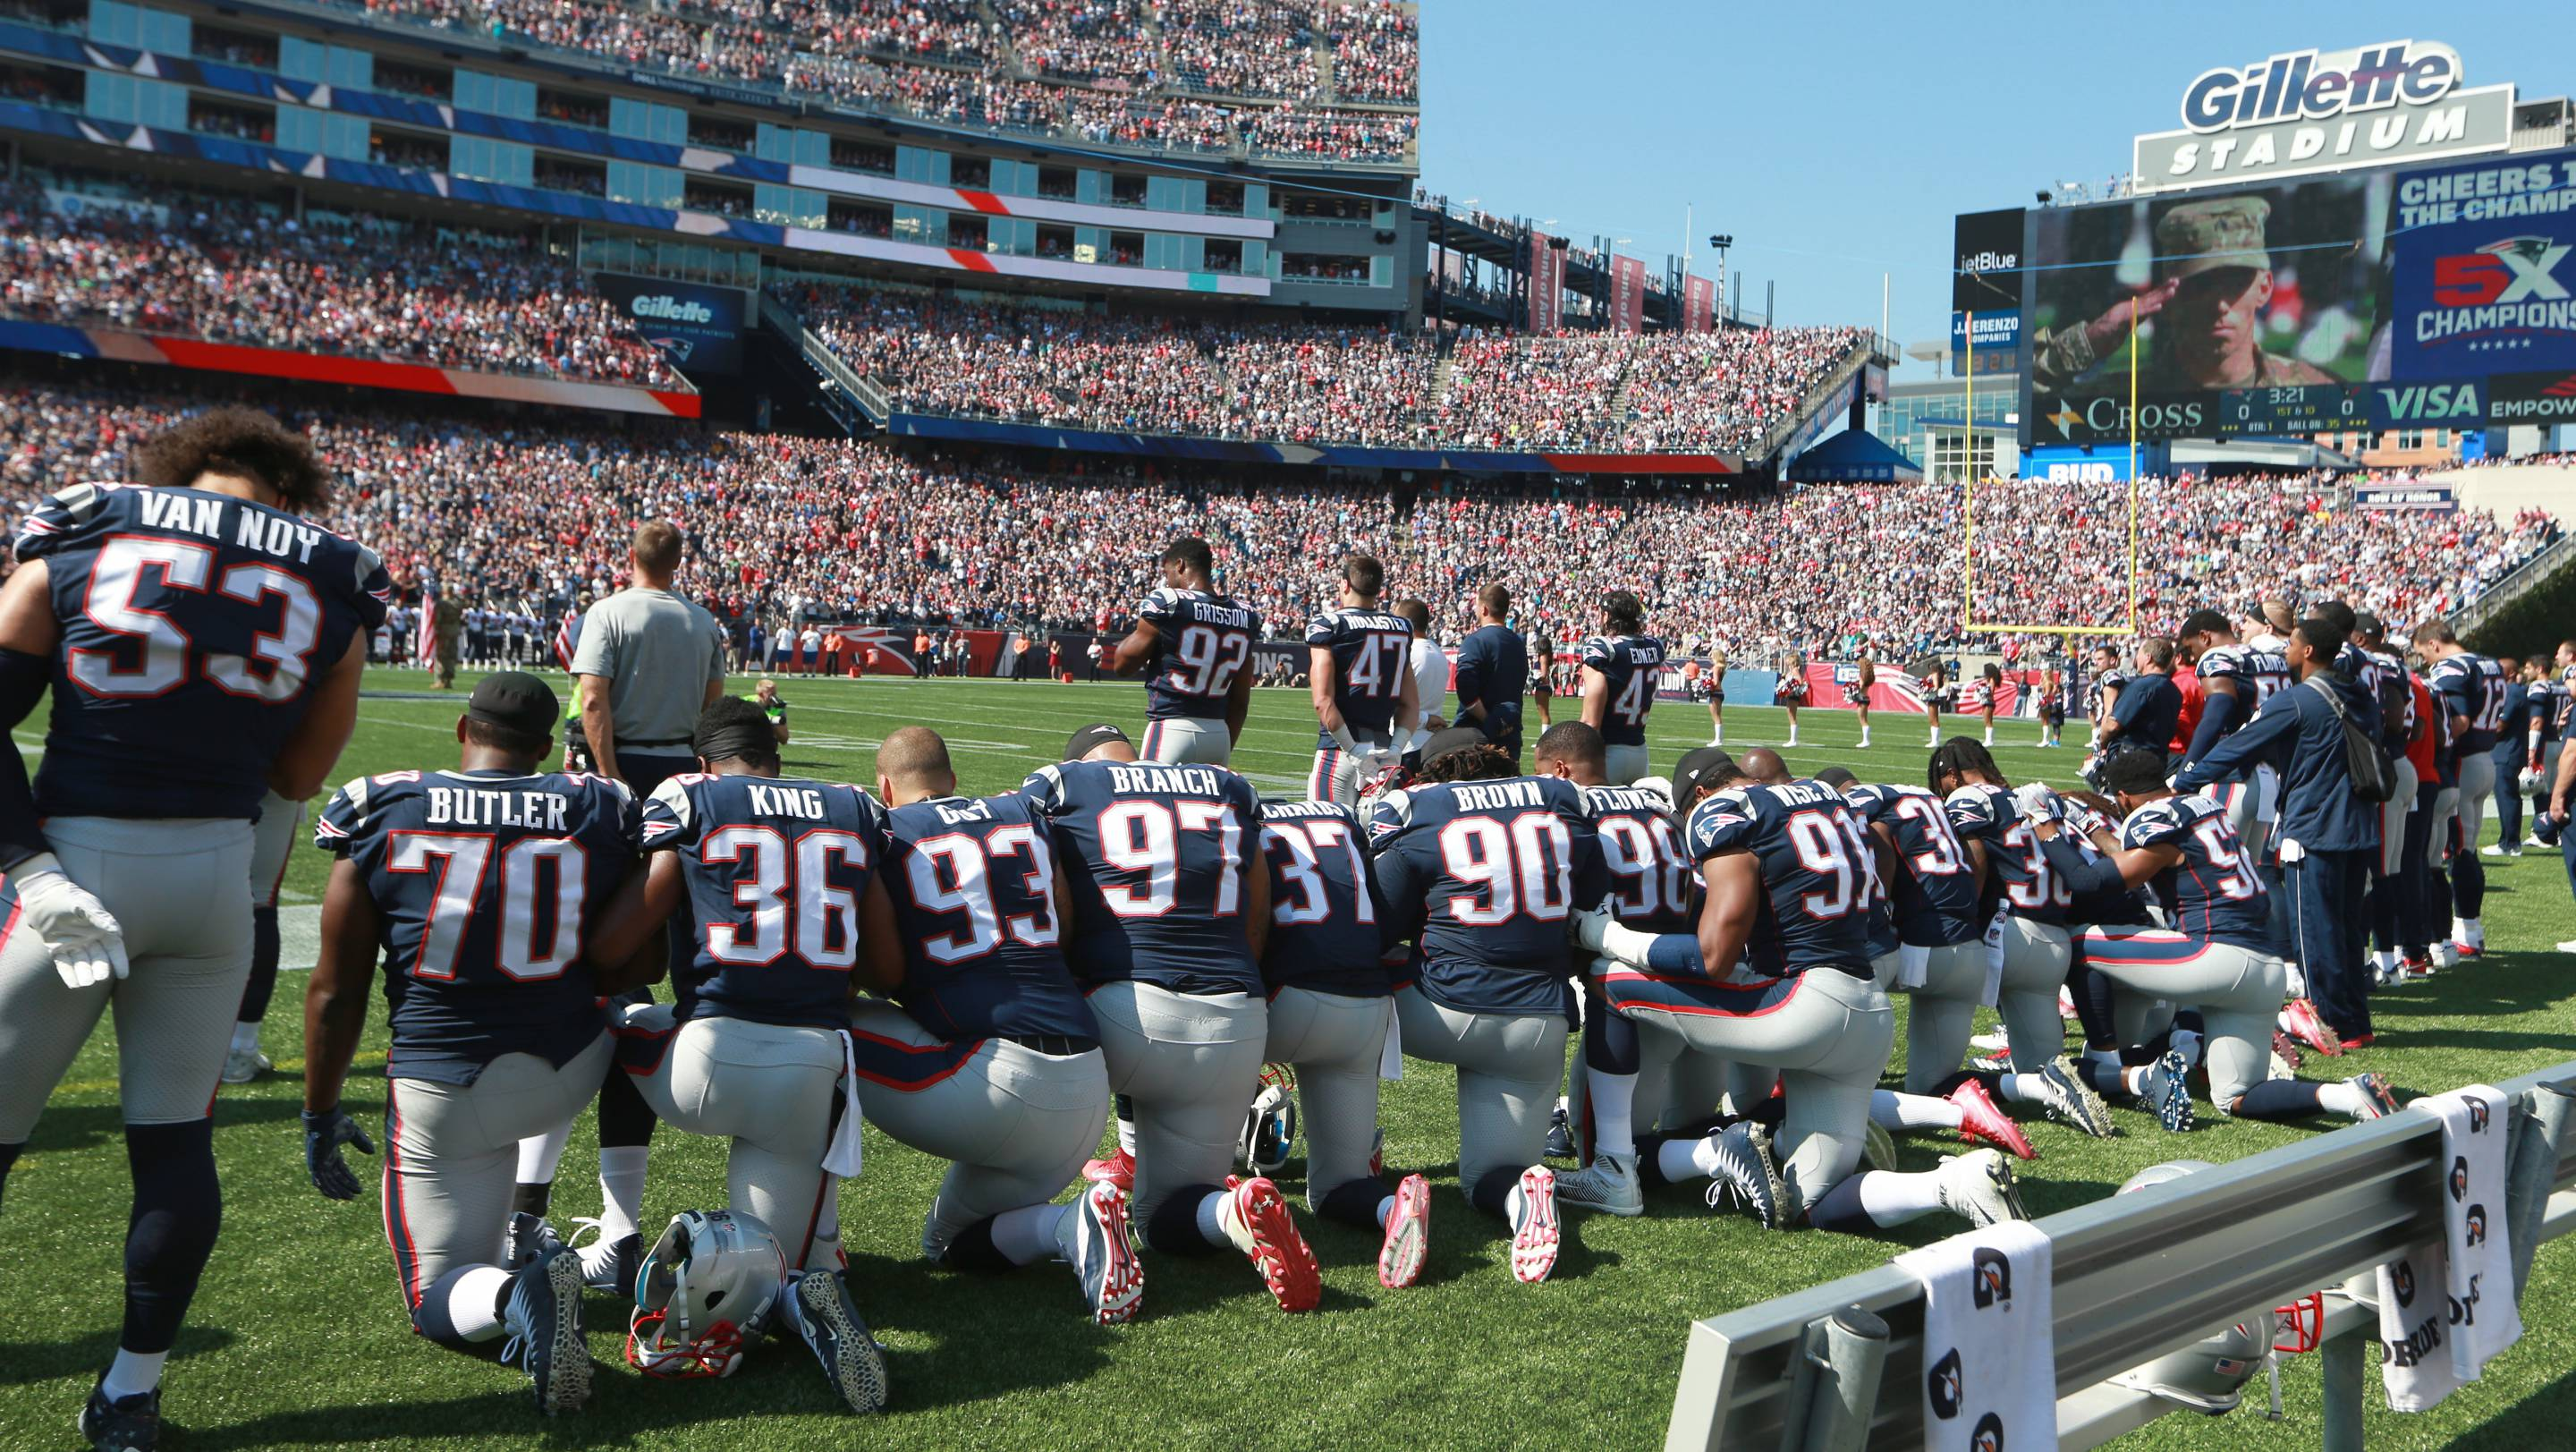 New England Patriots players take a knee during the national anthem before the start of a game against the Houston Texans at Gillette Stadium in Foxborough, Mass., Sept. 24, 2017.